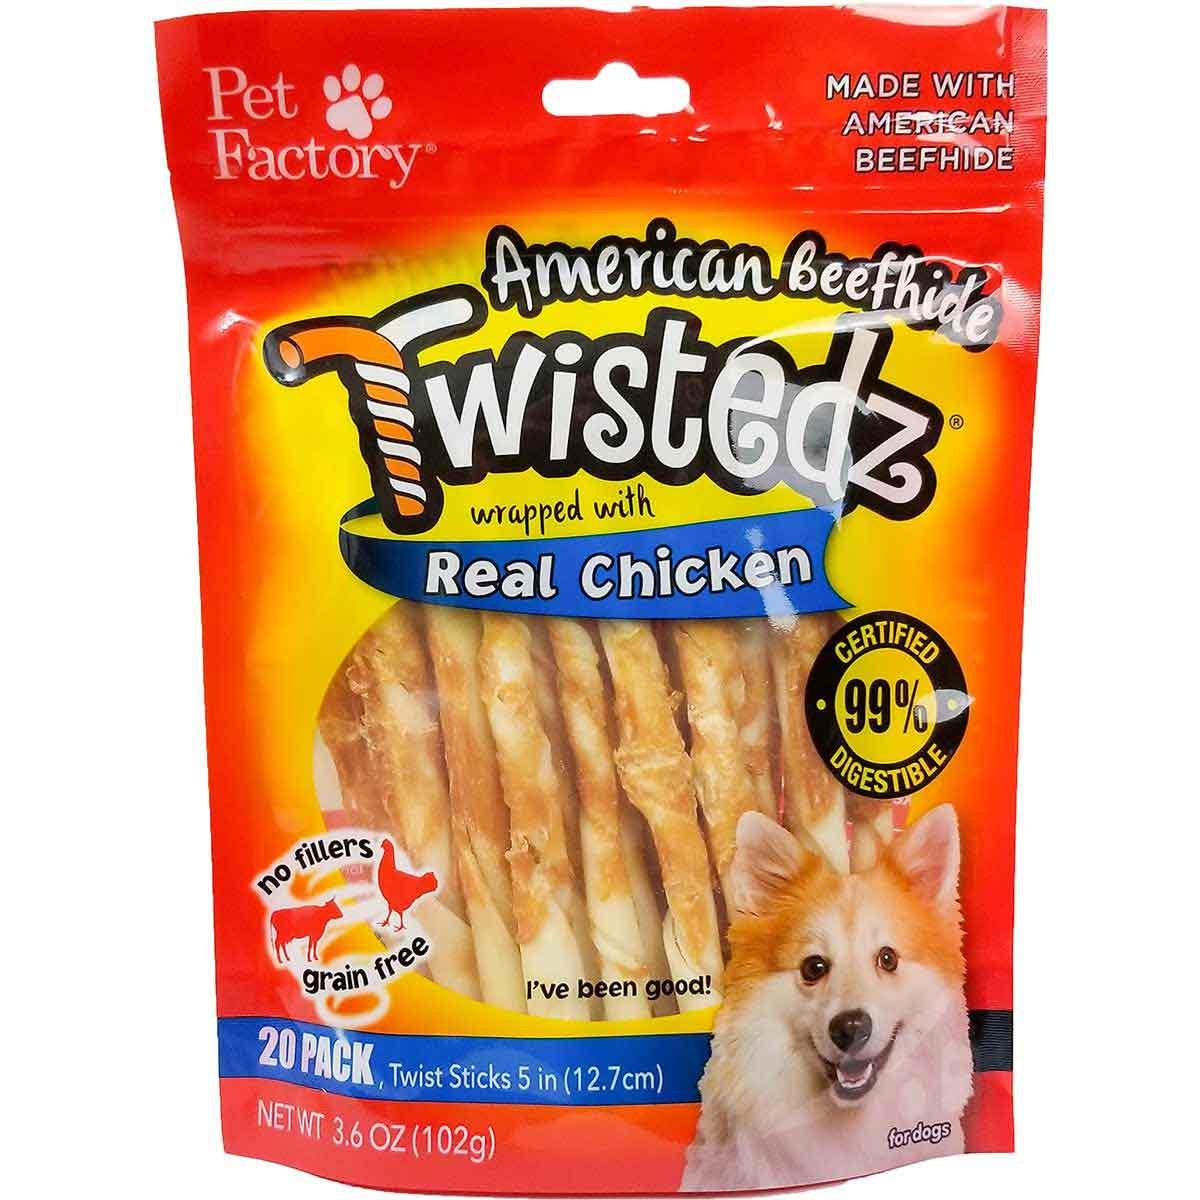 20 Pack Pet Factory Twistedz Chicken 5 inch Sticks Dog Treats